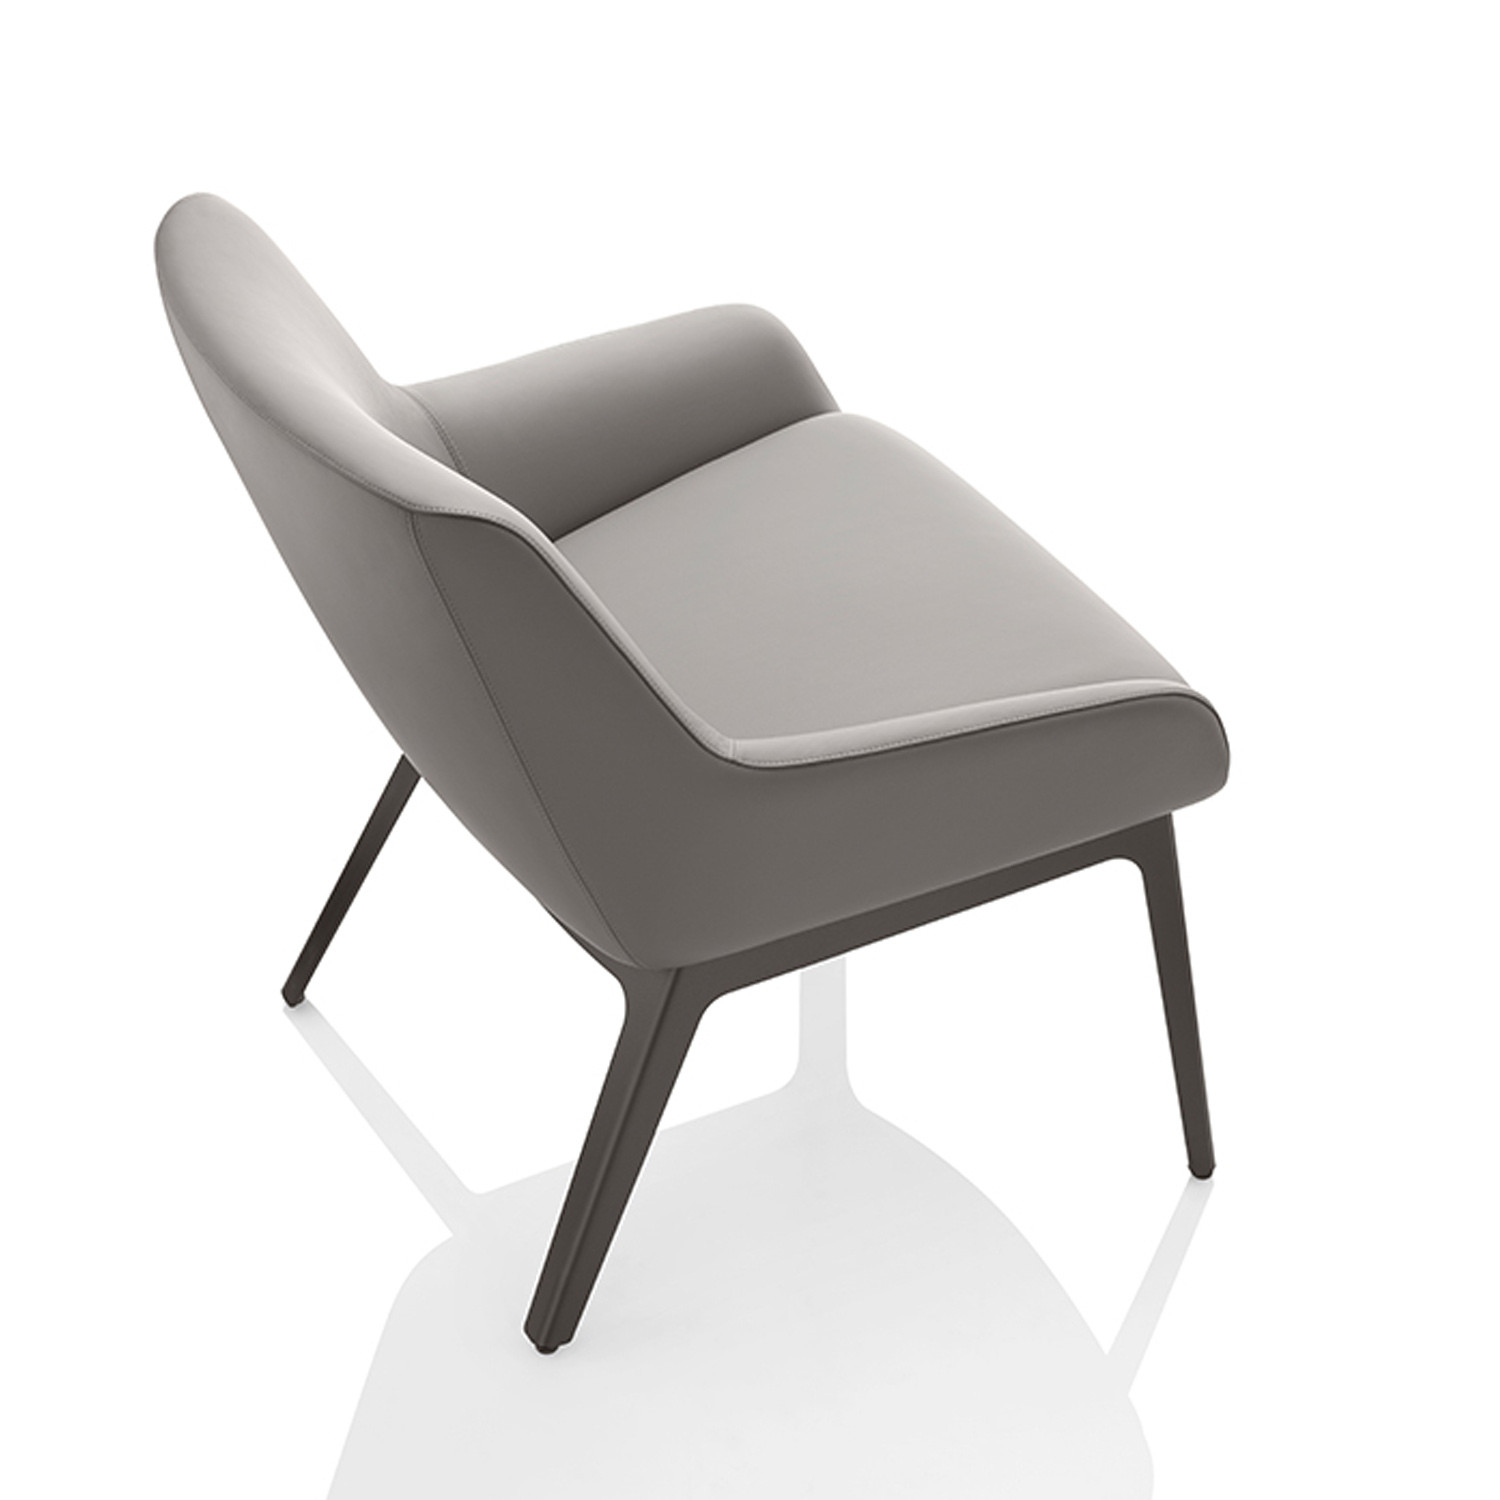 Marnie Lounge Chair